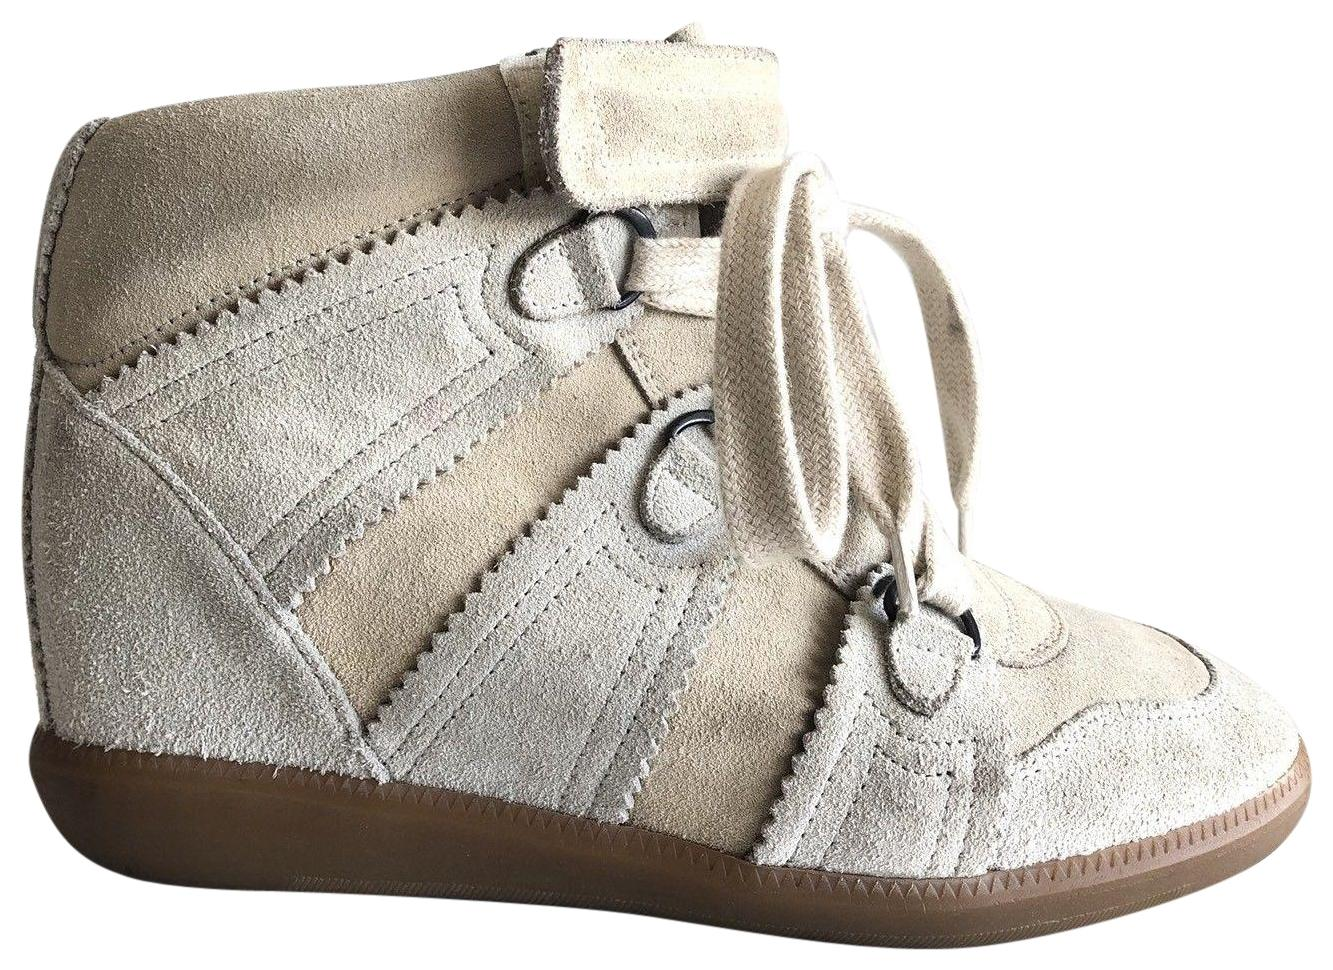 cca76f8e3b12 Isabel Marant Chalk White Bobby Bobby Bobby Suede Wedge Sneakers Boots  Booties Size EU 37 (Approx. US 7) Regular (M